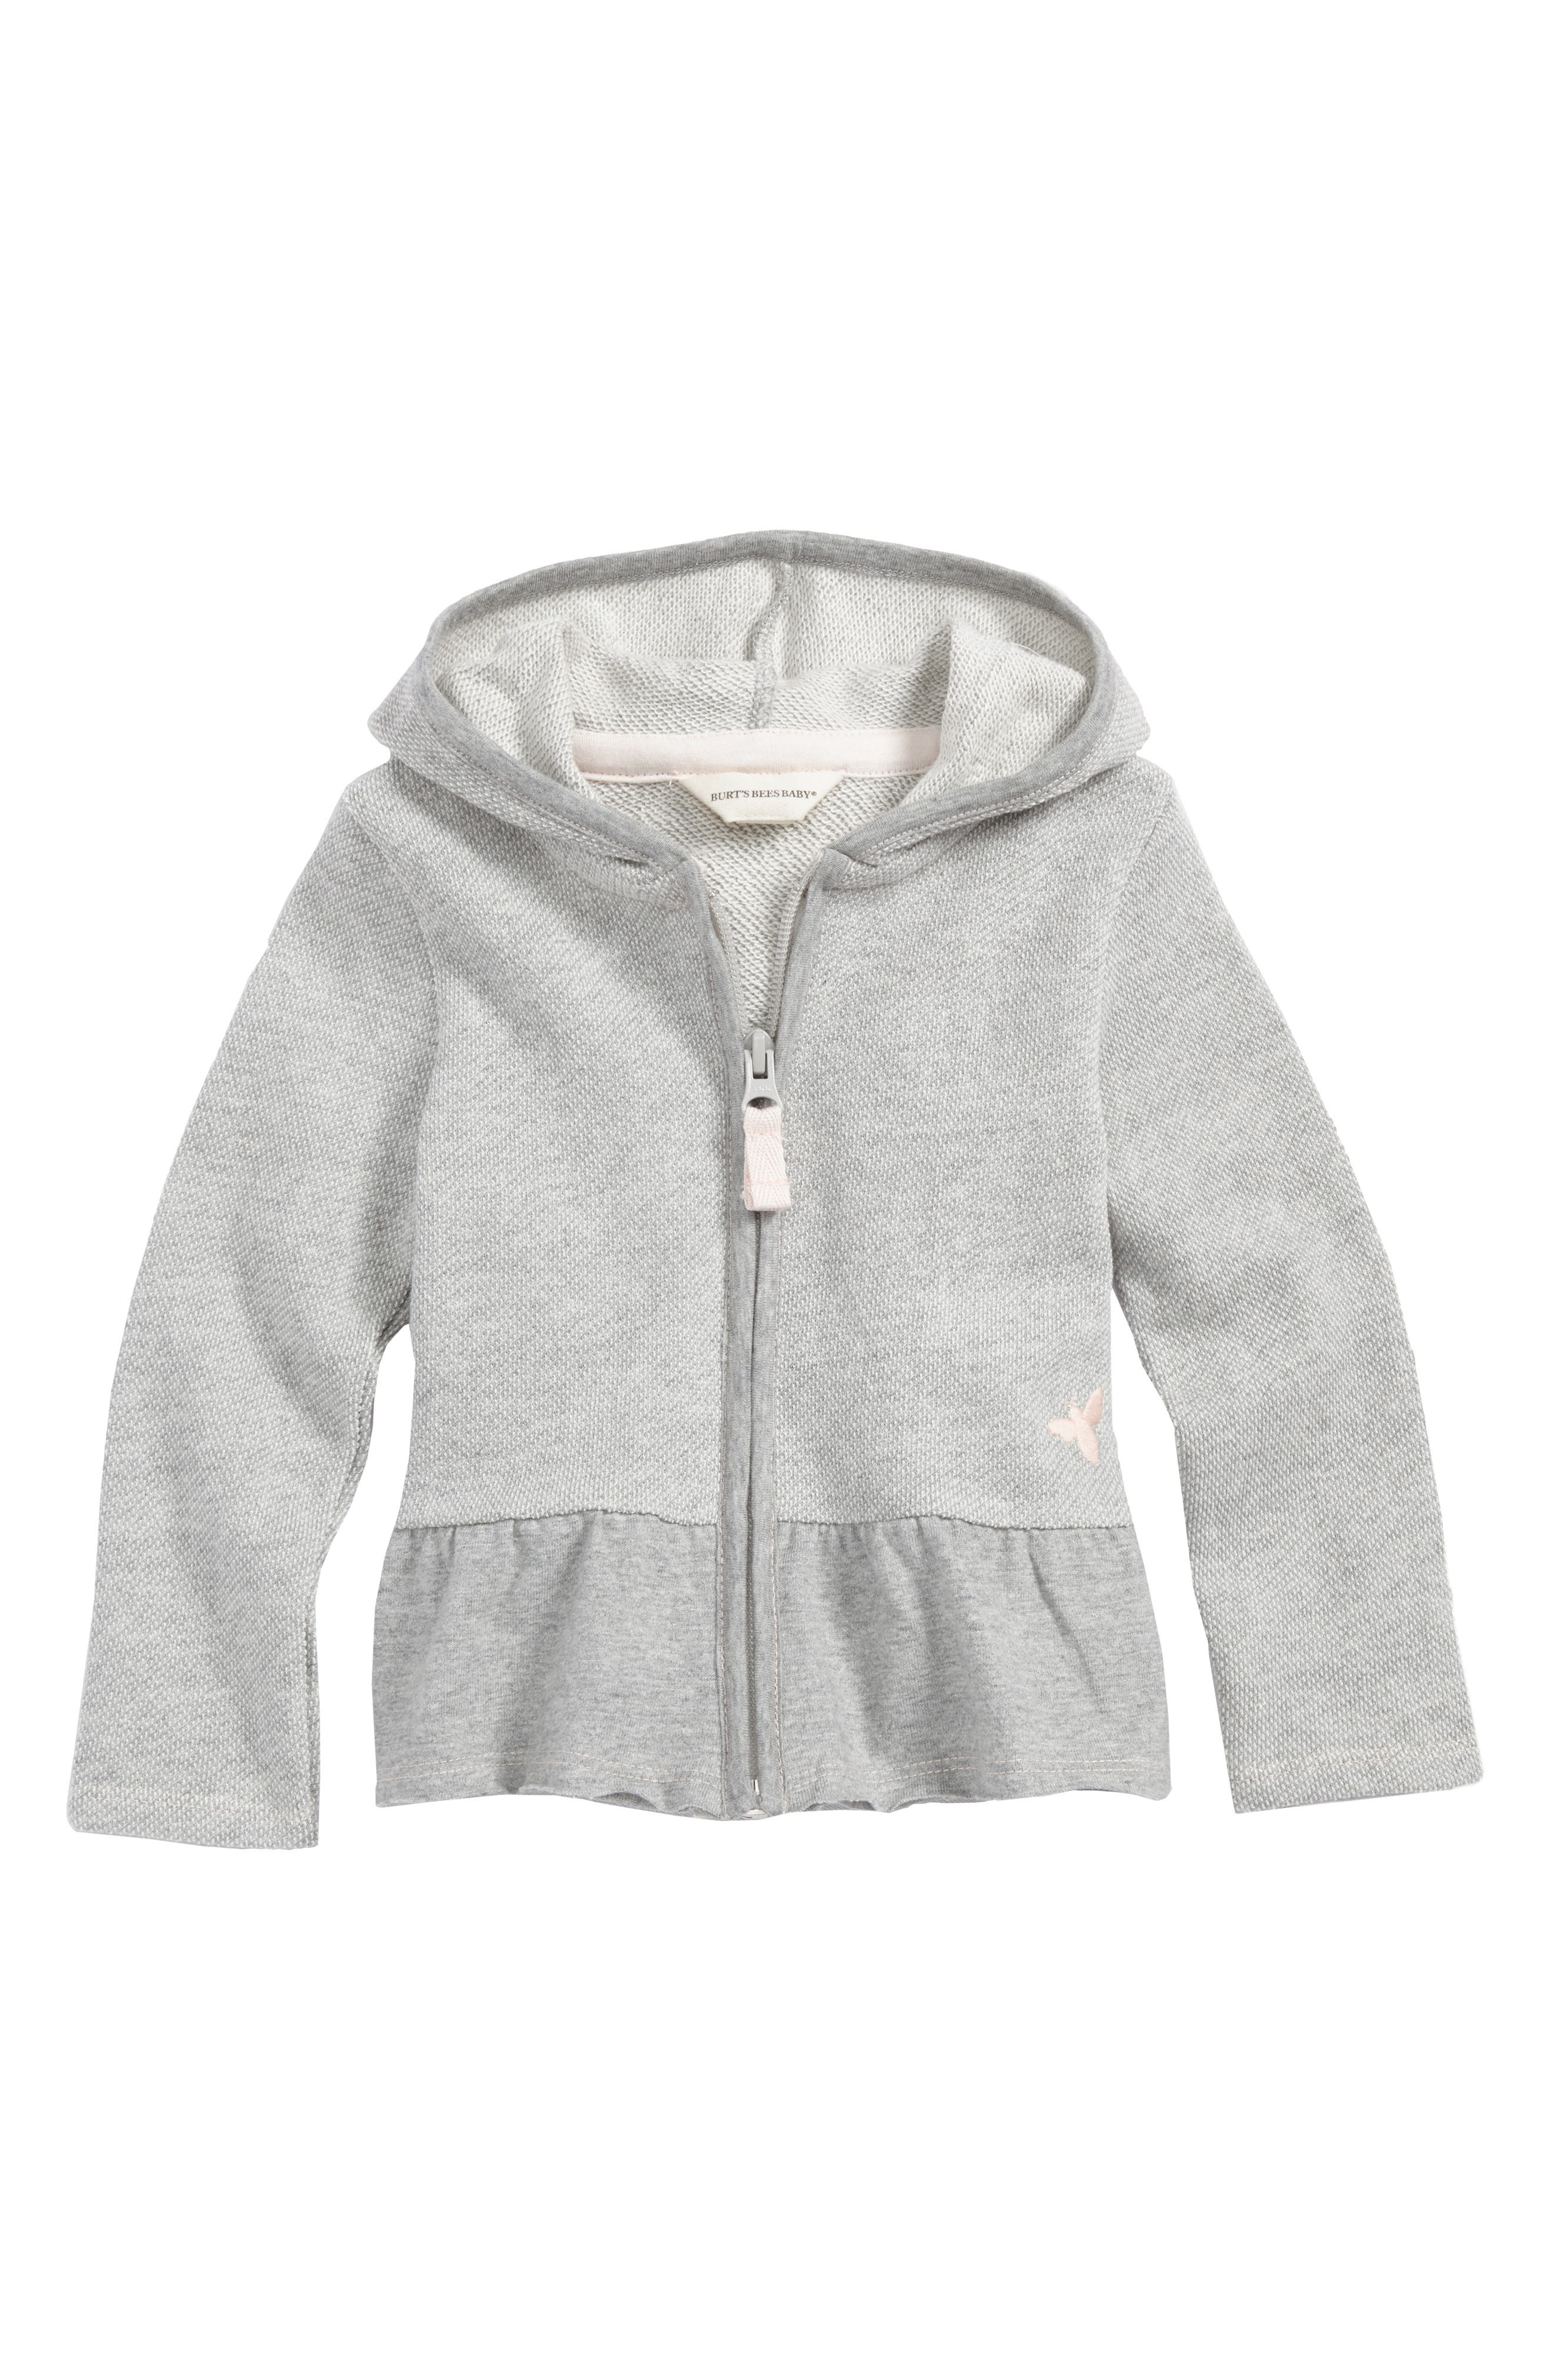 Piqué Organic Cotton Ruffle Hem Zip Hoodie,                             Main thumbnail 1, color,